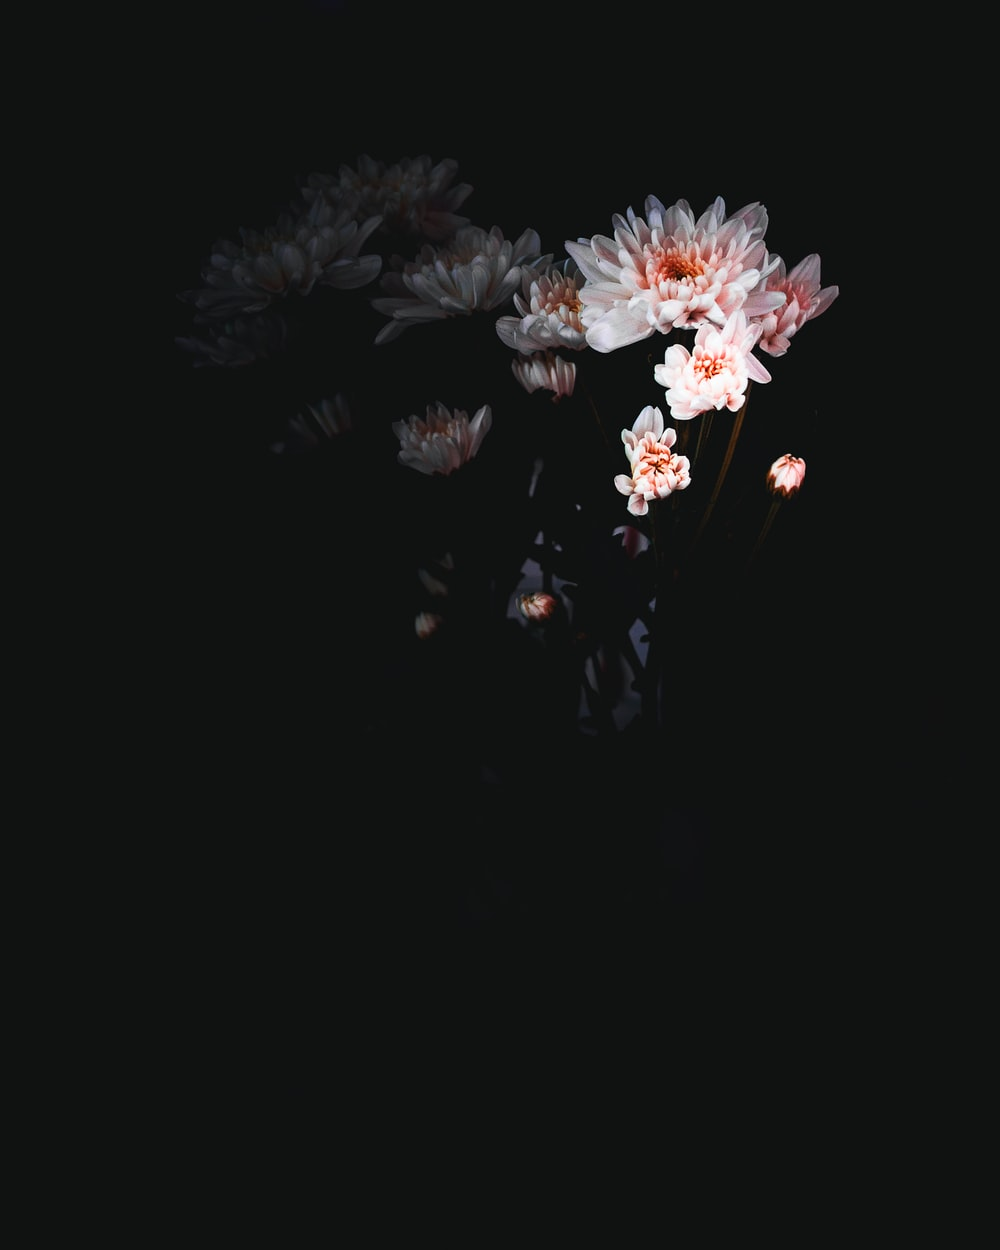 White Flowers Dark Background Photo By Yousef Alfuhigi